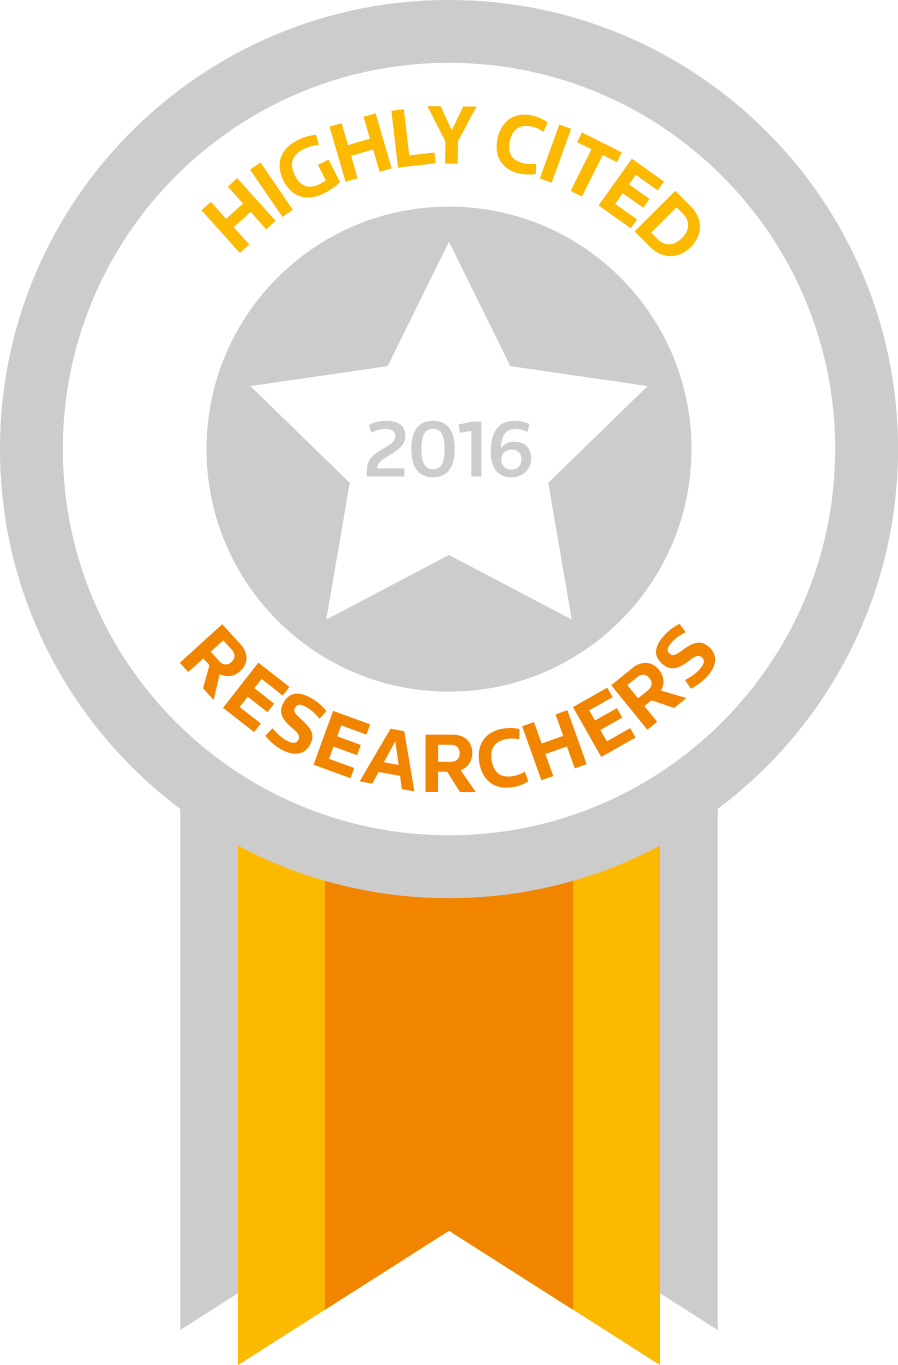 Highly cited 2016